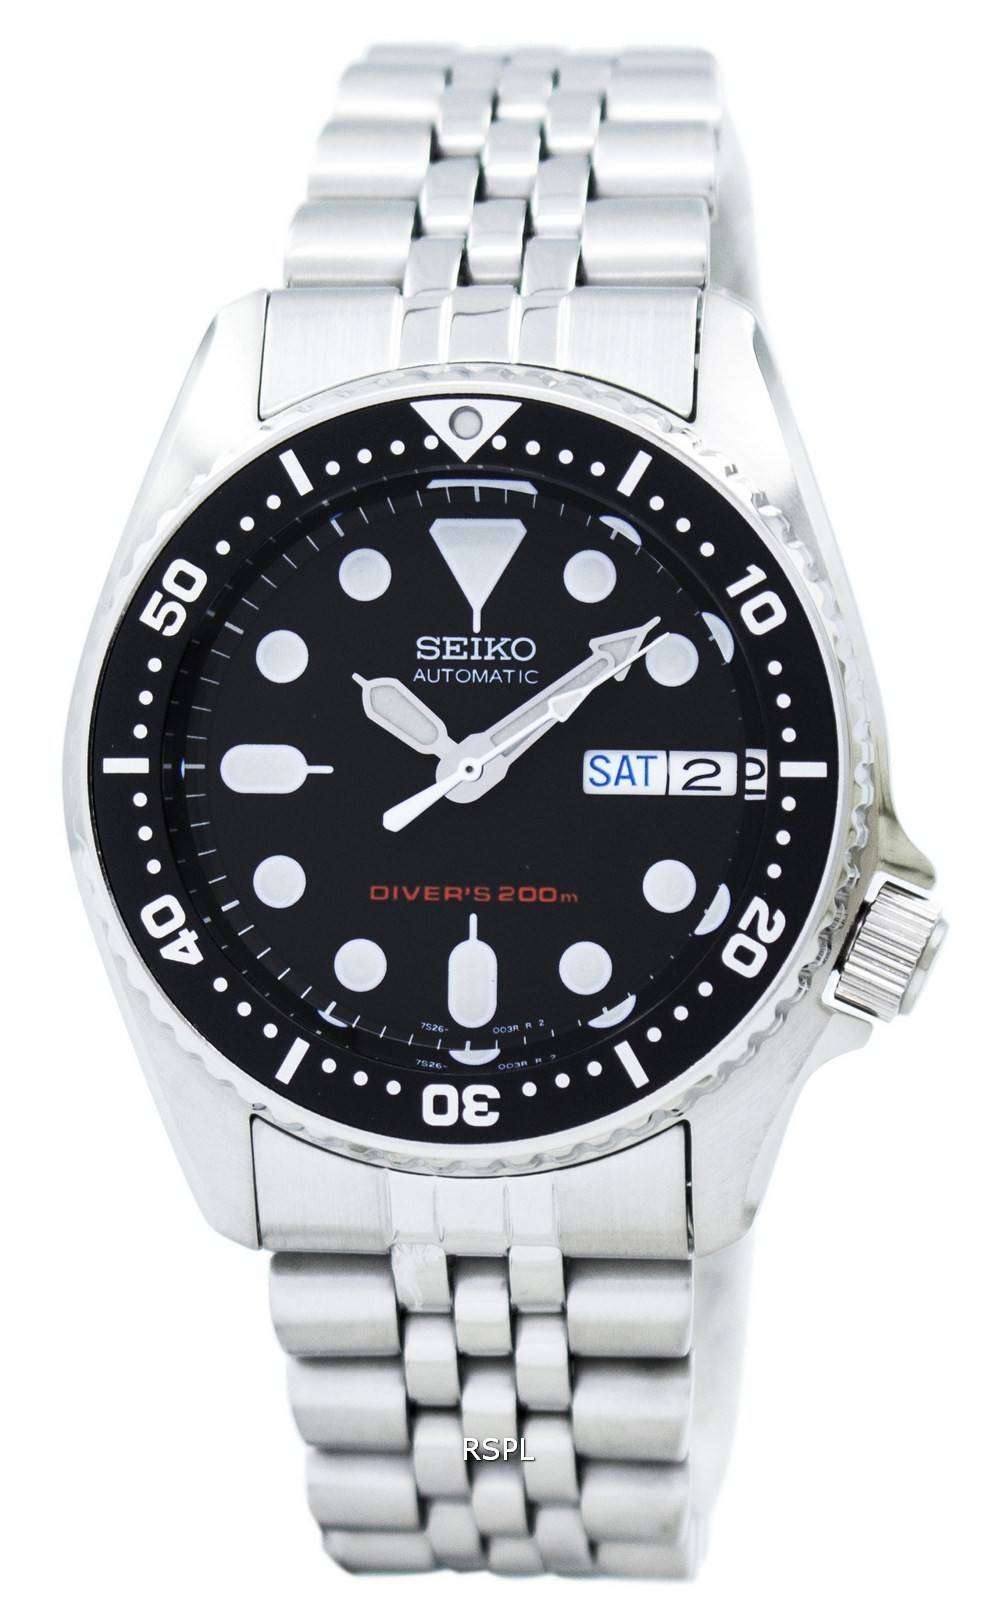 Seiko divers automatic 200m 21 jewels small size skx013k2 men 39 s watch downunderwatches for Small size womans watch